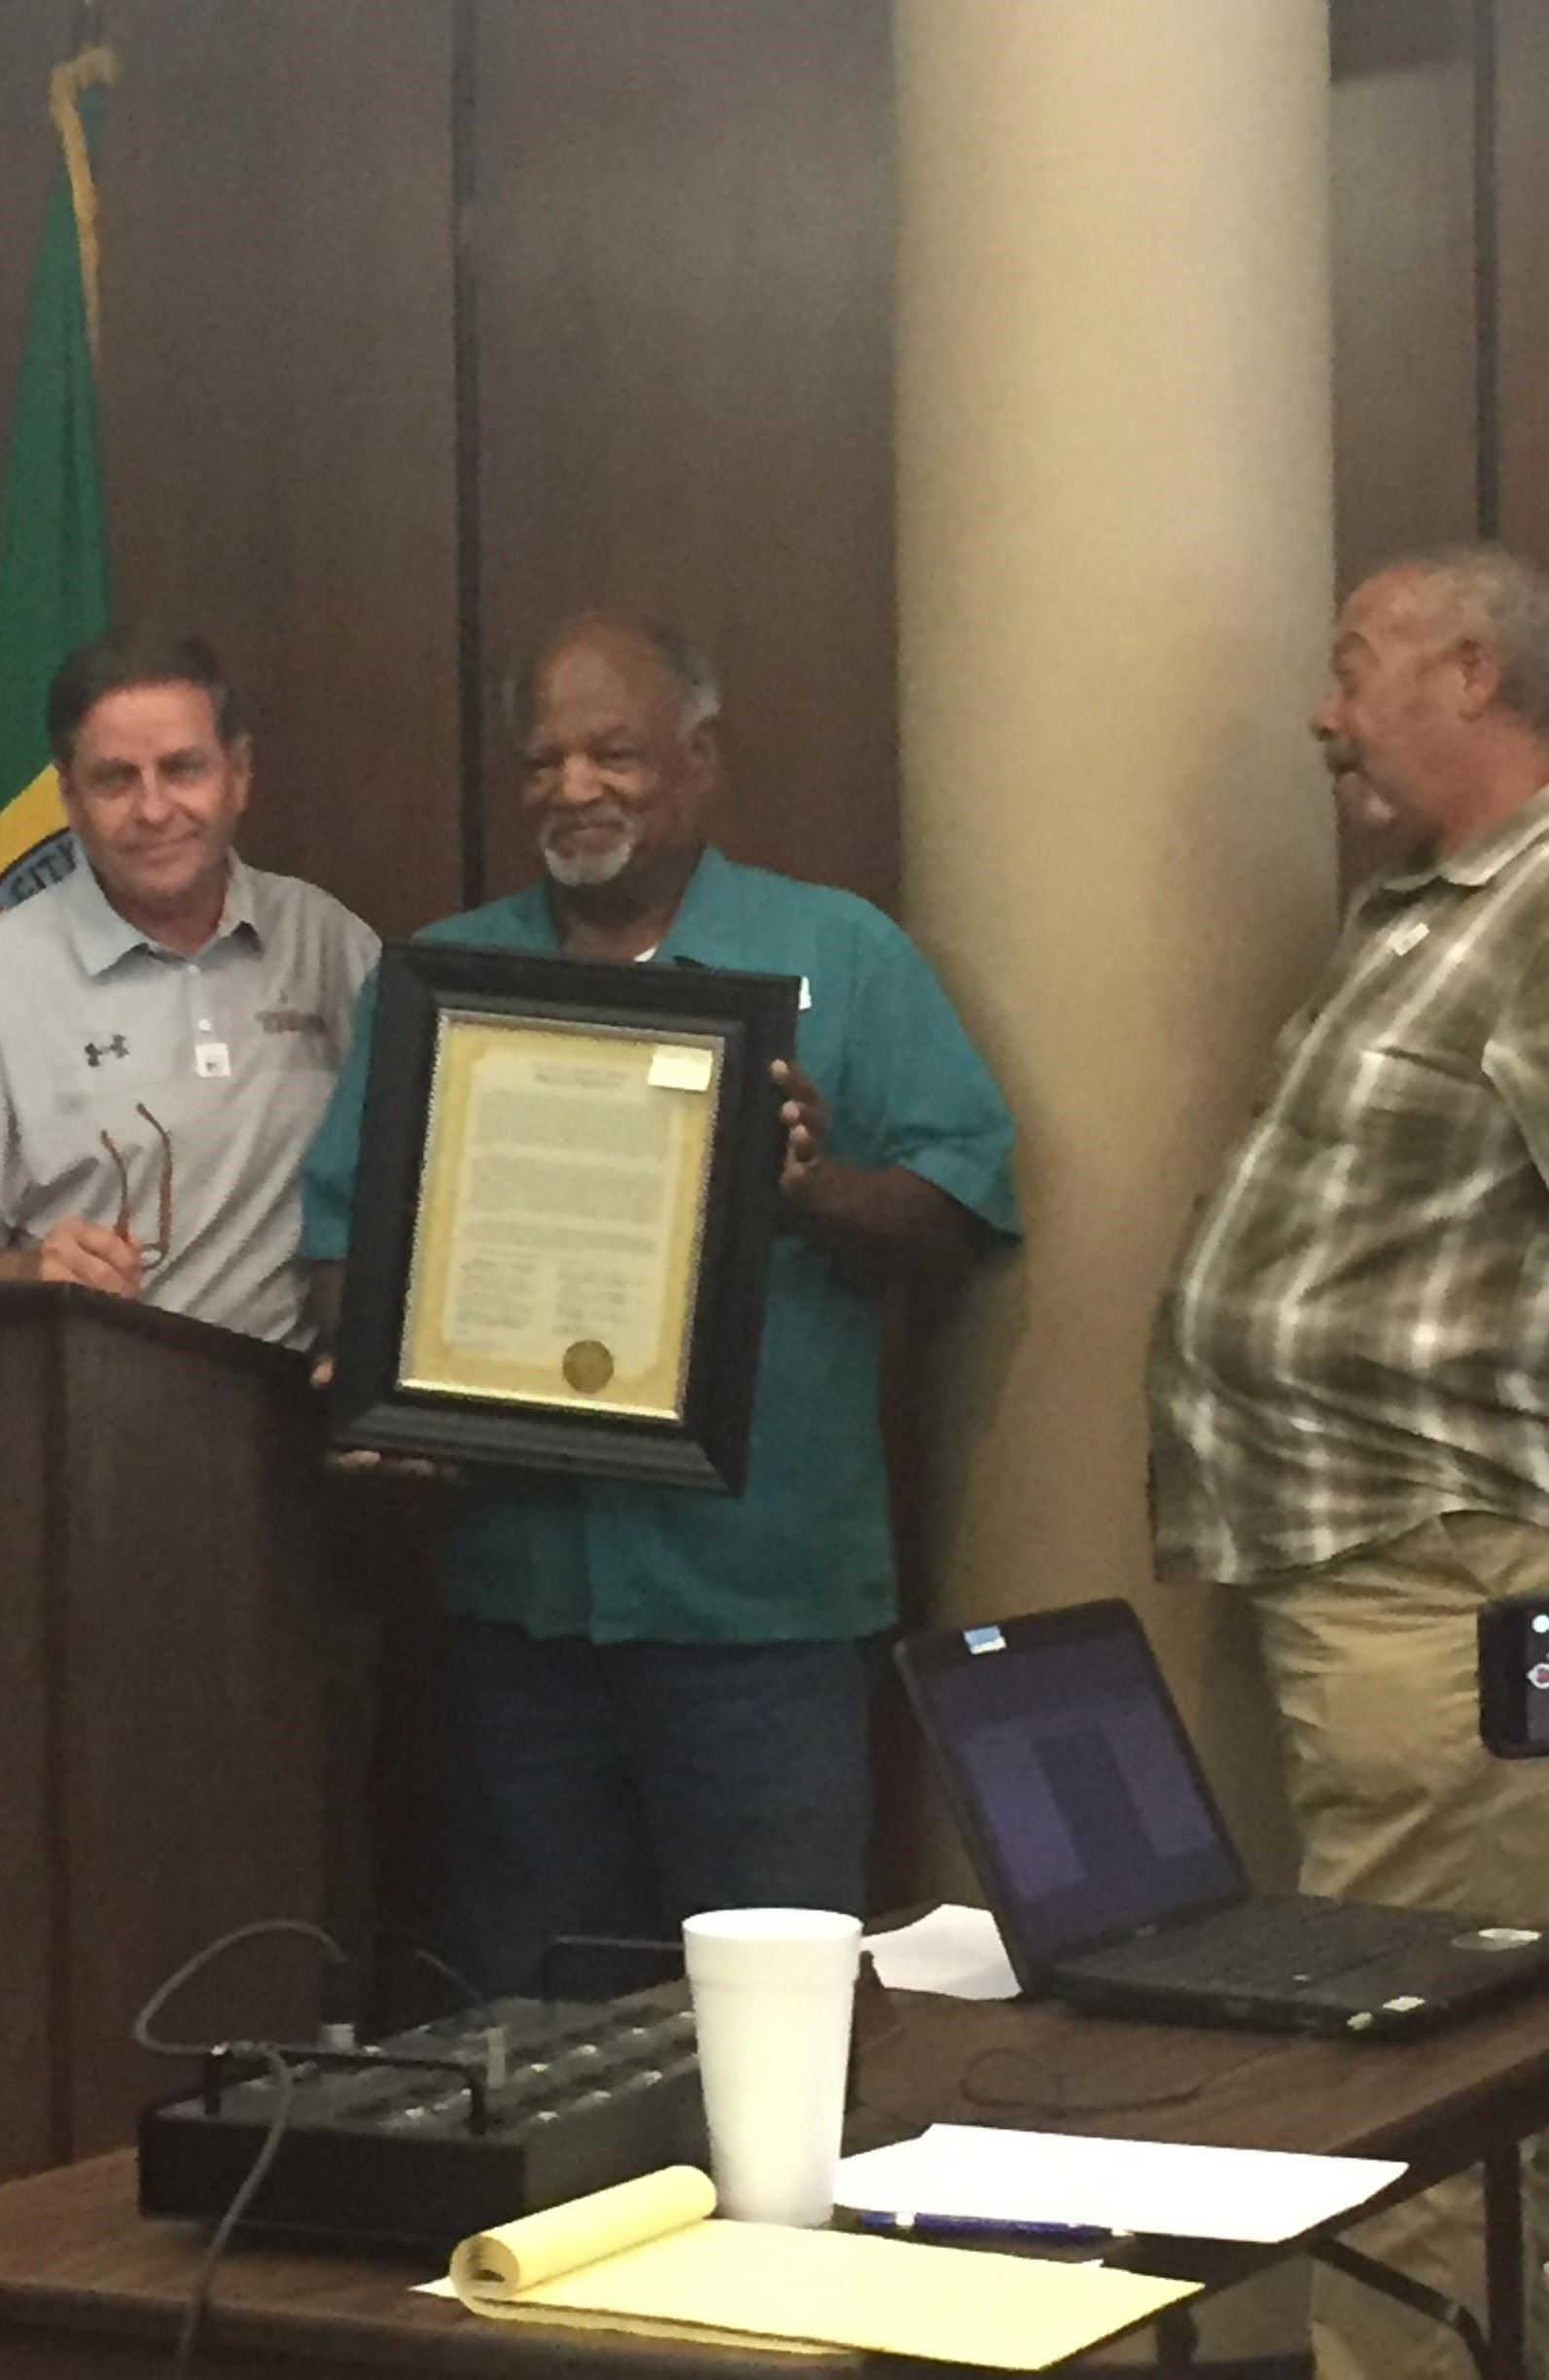 Curlie DeRamus receives his Quality of Life proclamation from Mayor Sherman Guyton.